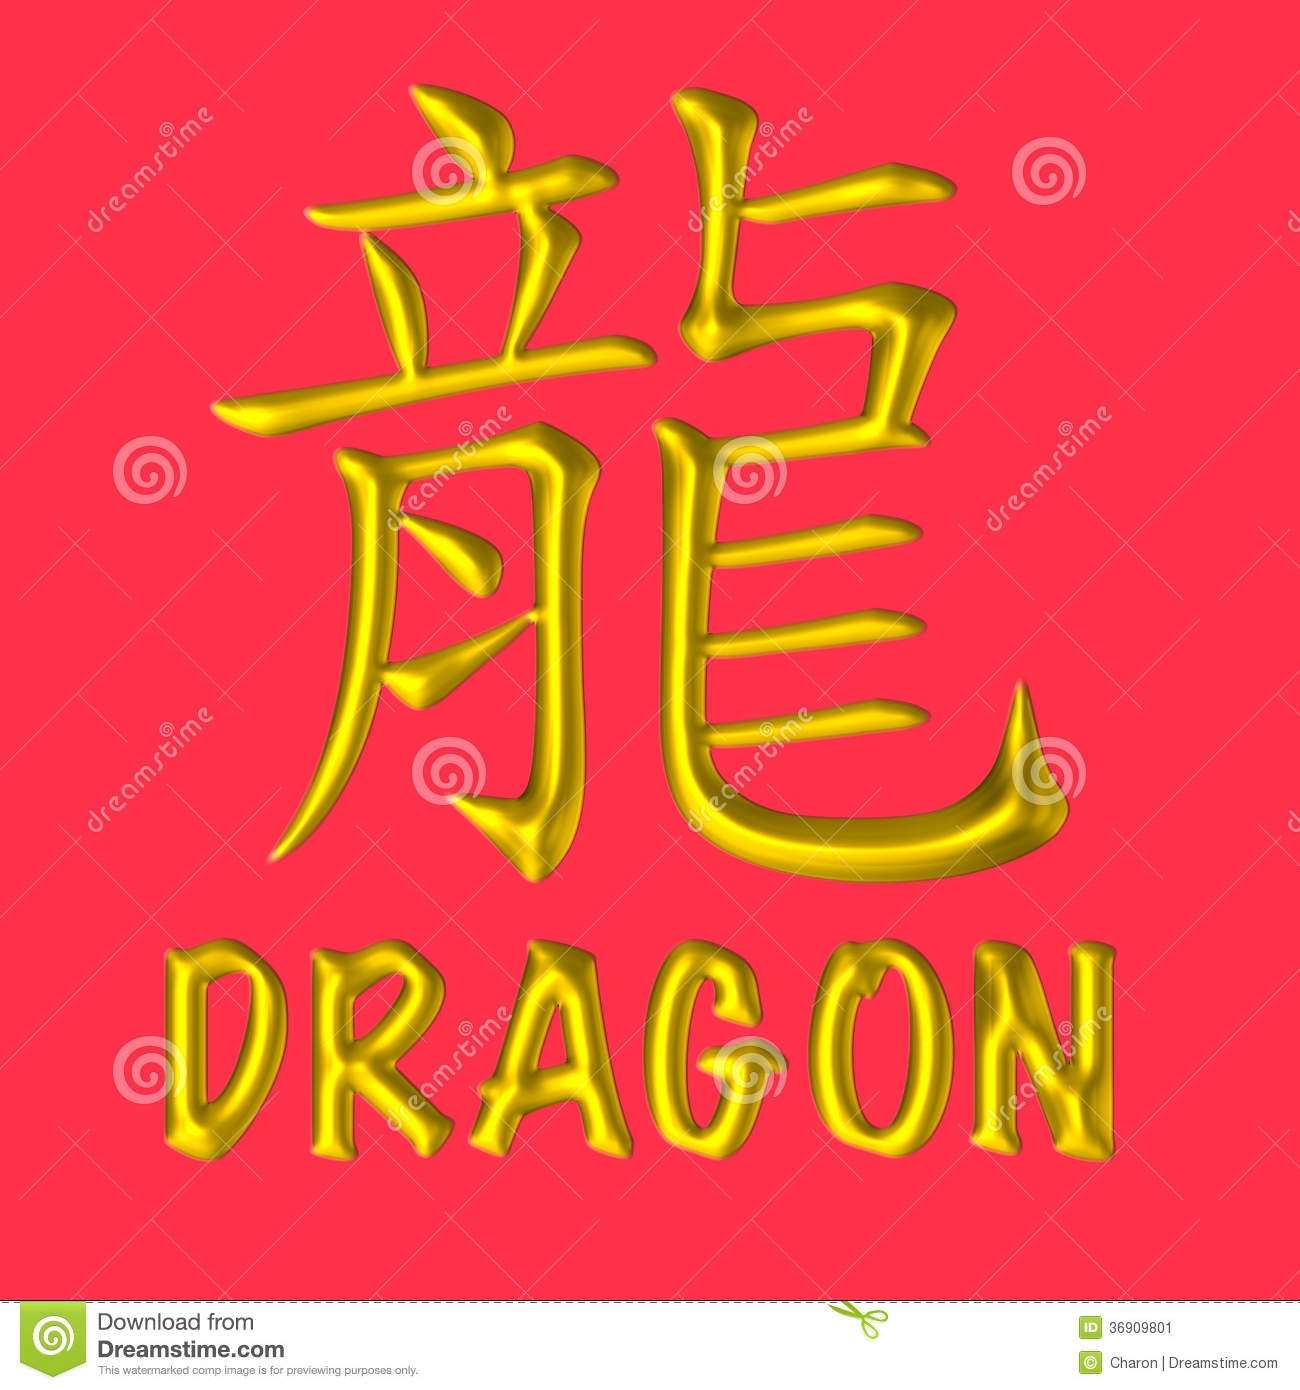 zodiac coloring pages - stock image dragon golden chinese zodiac d gold letter english word lucky red background one twelve animals years cycles image